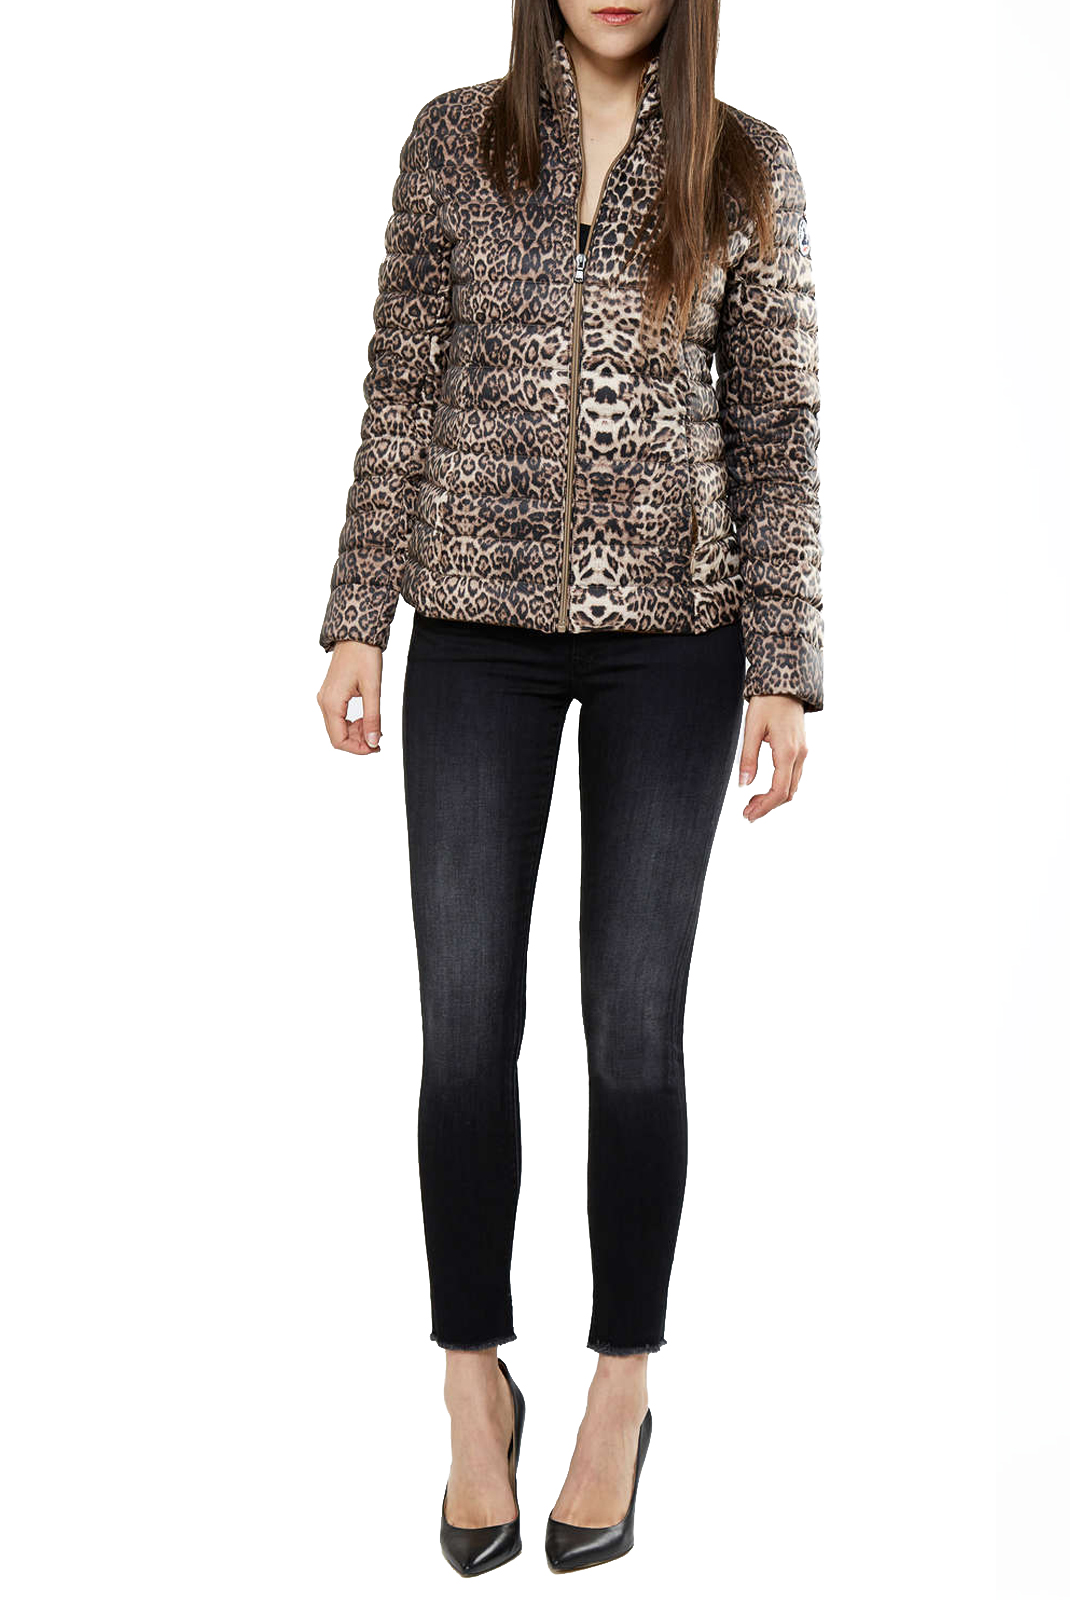 Blouson  Just over the top CHA 985 LEOPARD